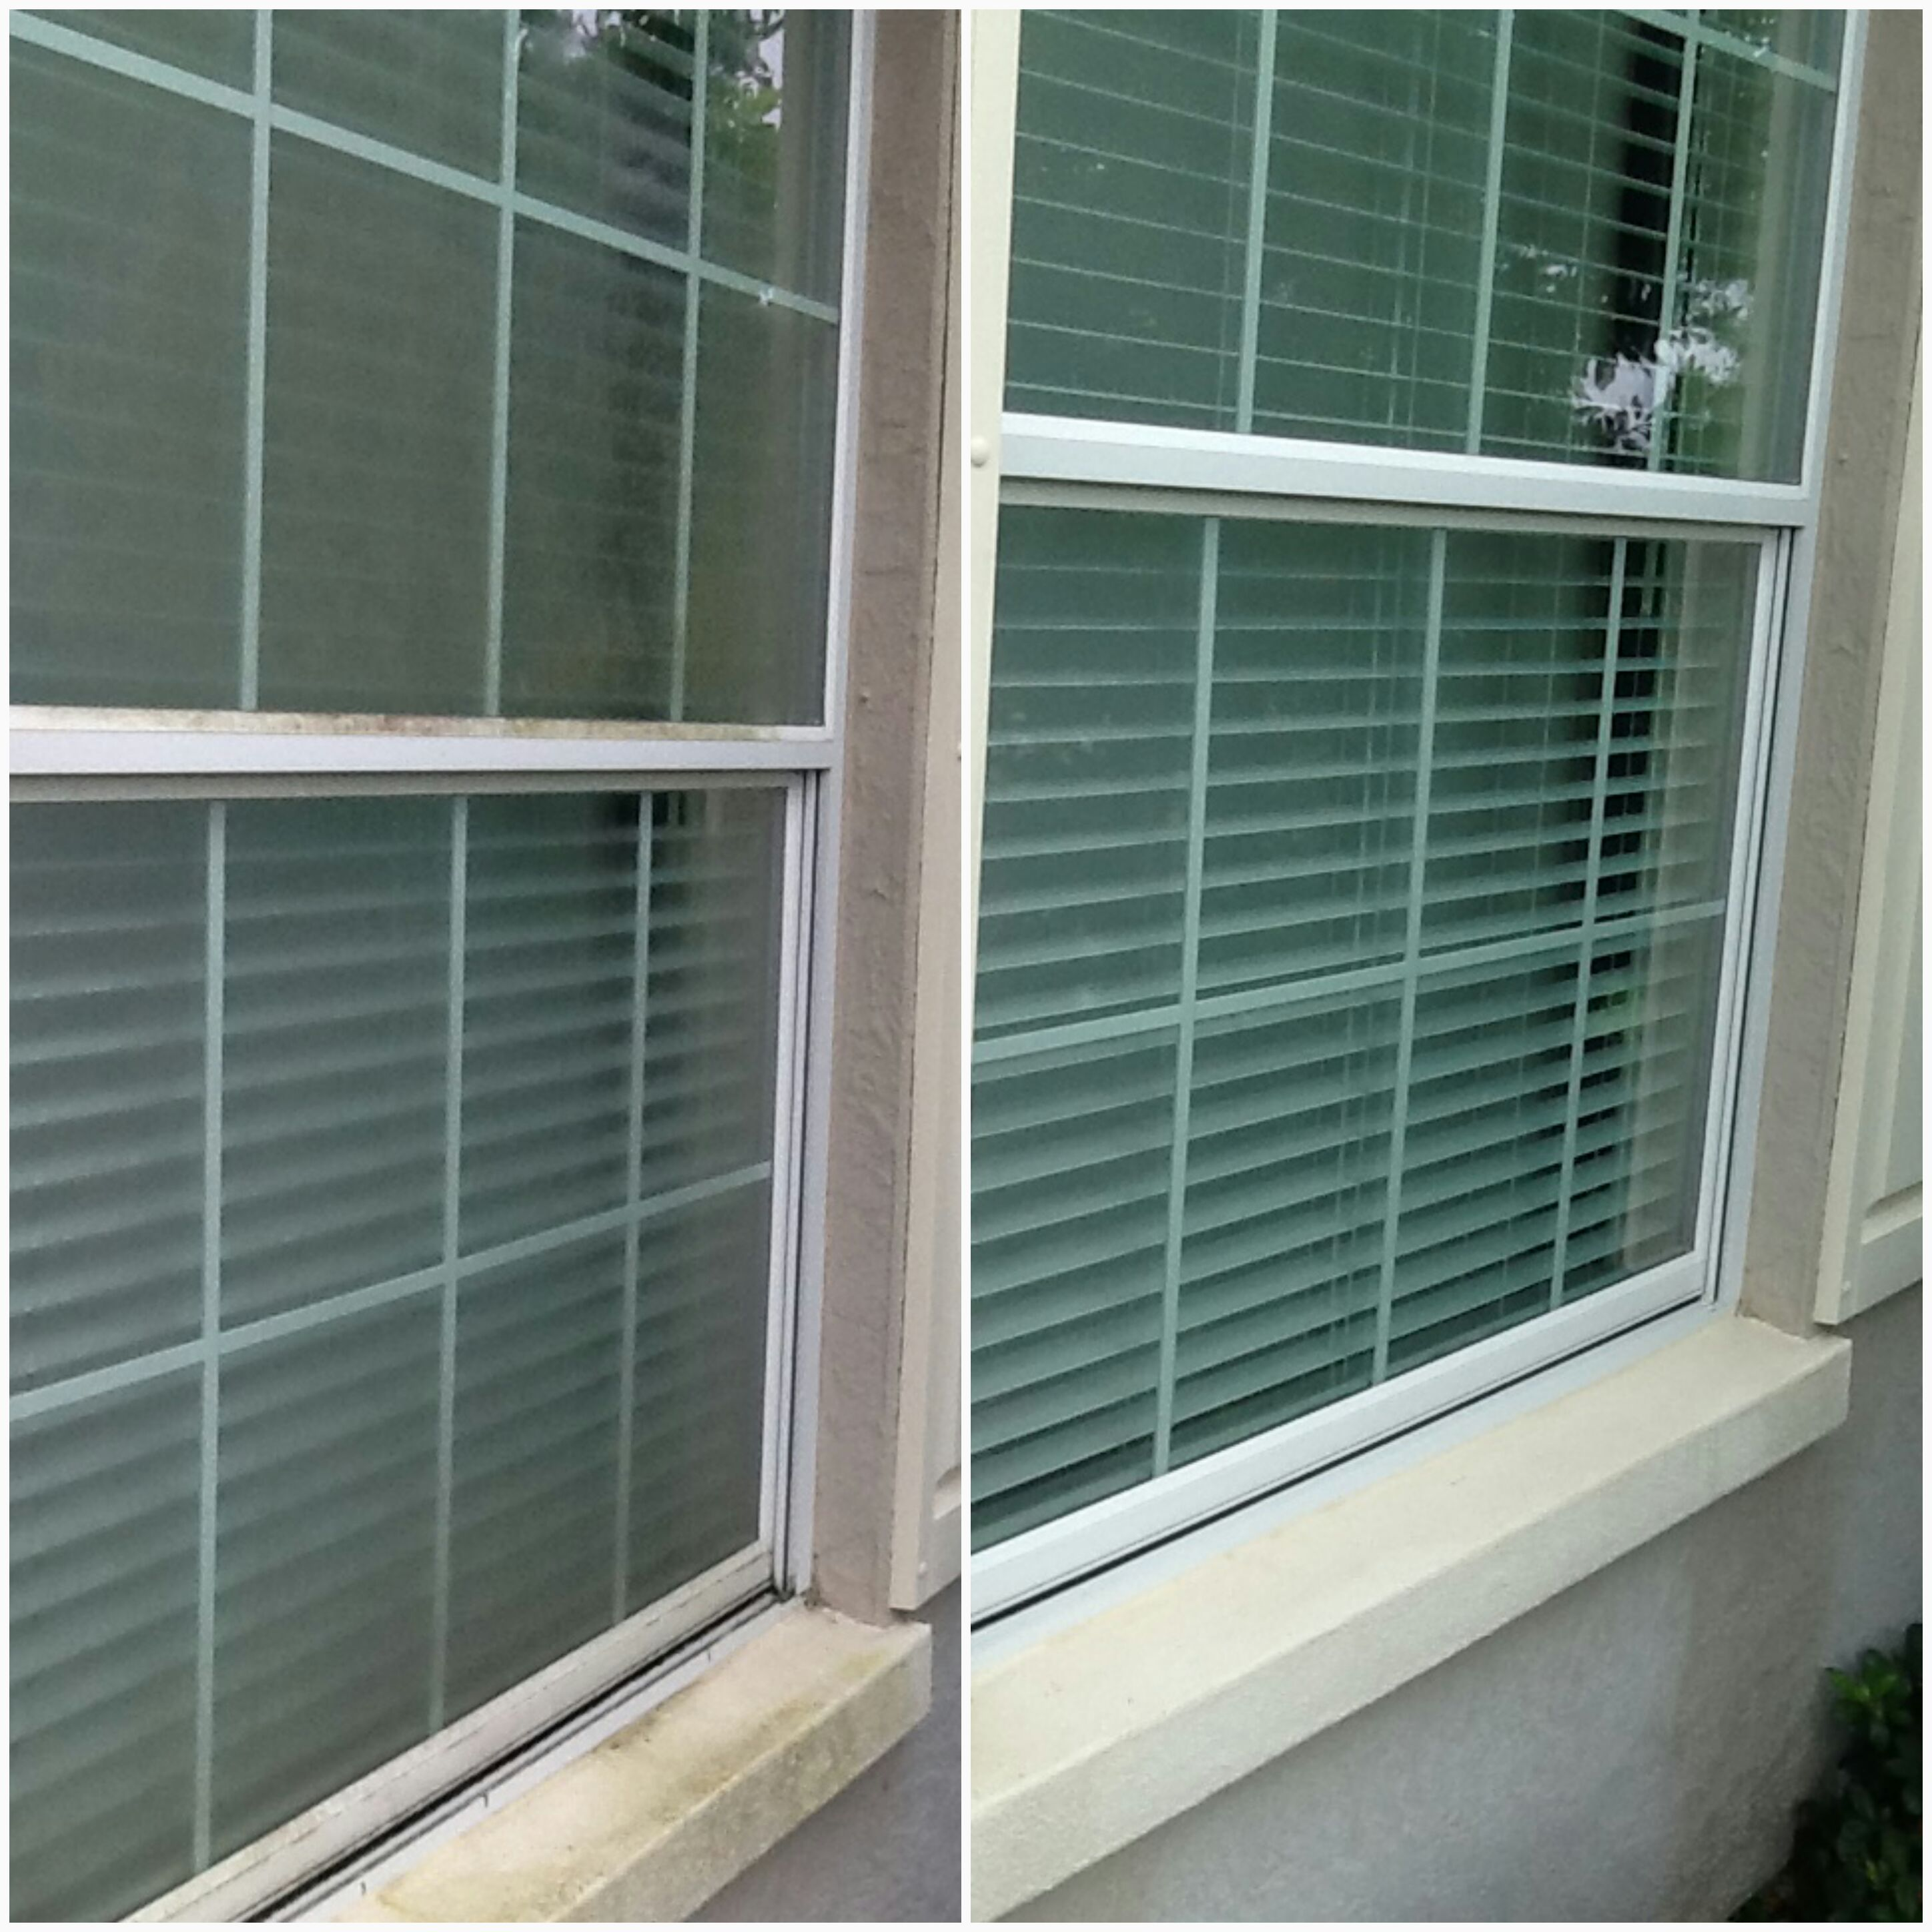 window washing central florida the villages